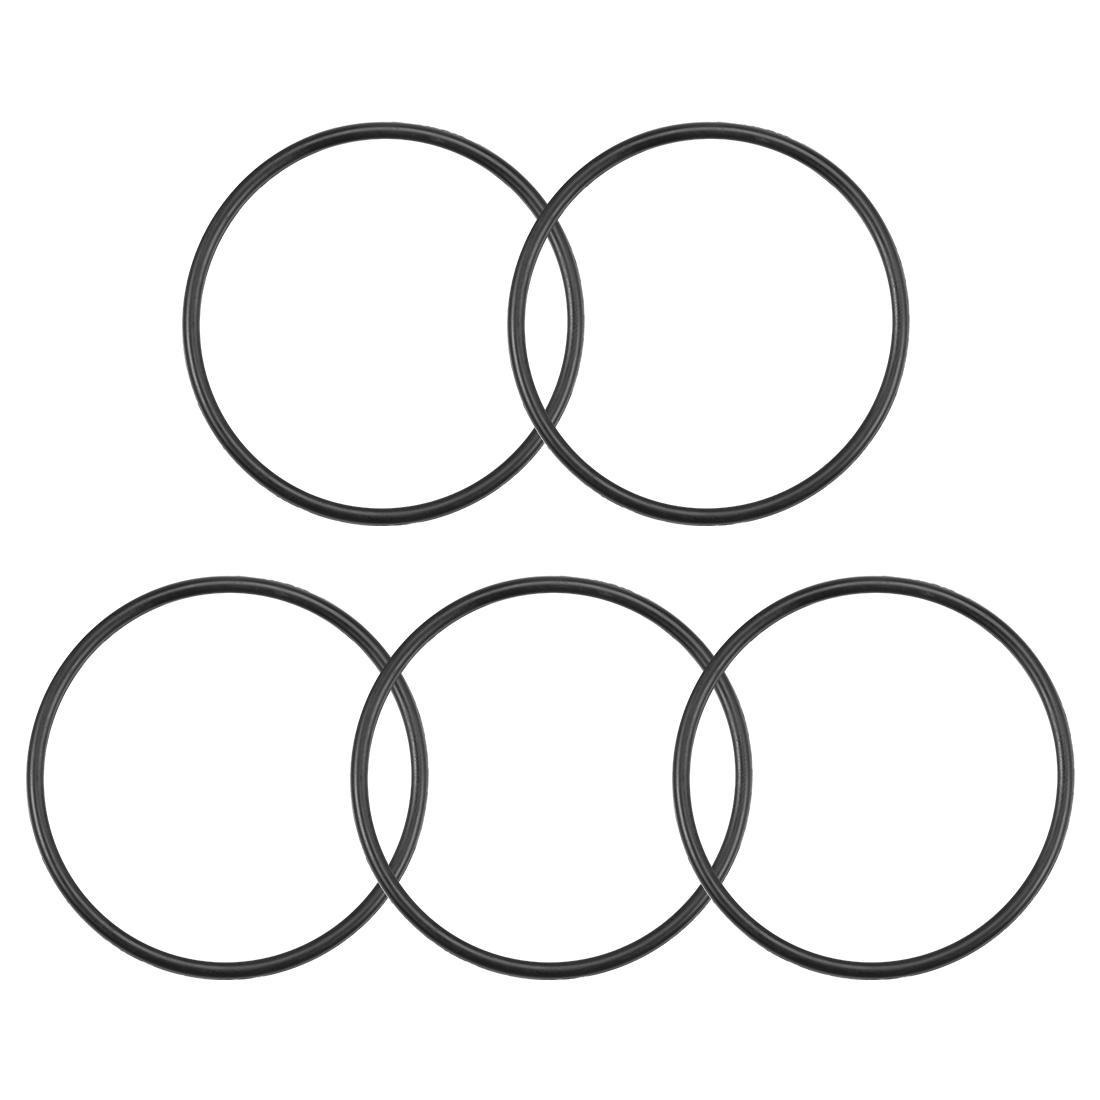 O-Rings Nitrile Rubber 50mm x 55.3mm x 2.65mm Round Seal Gasket 5 Pcs